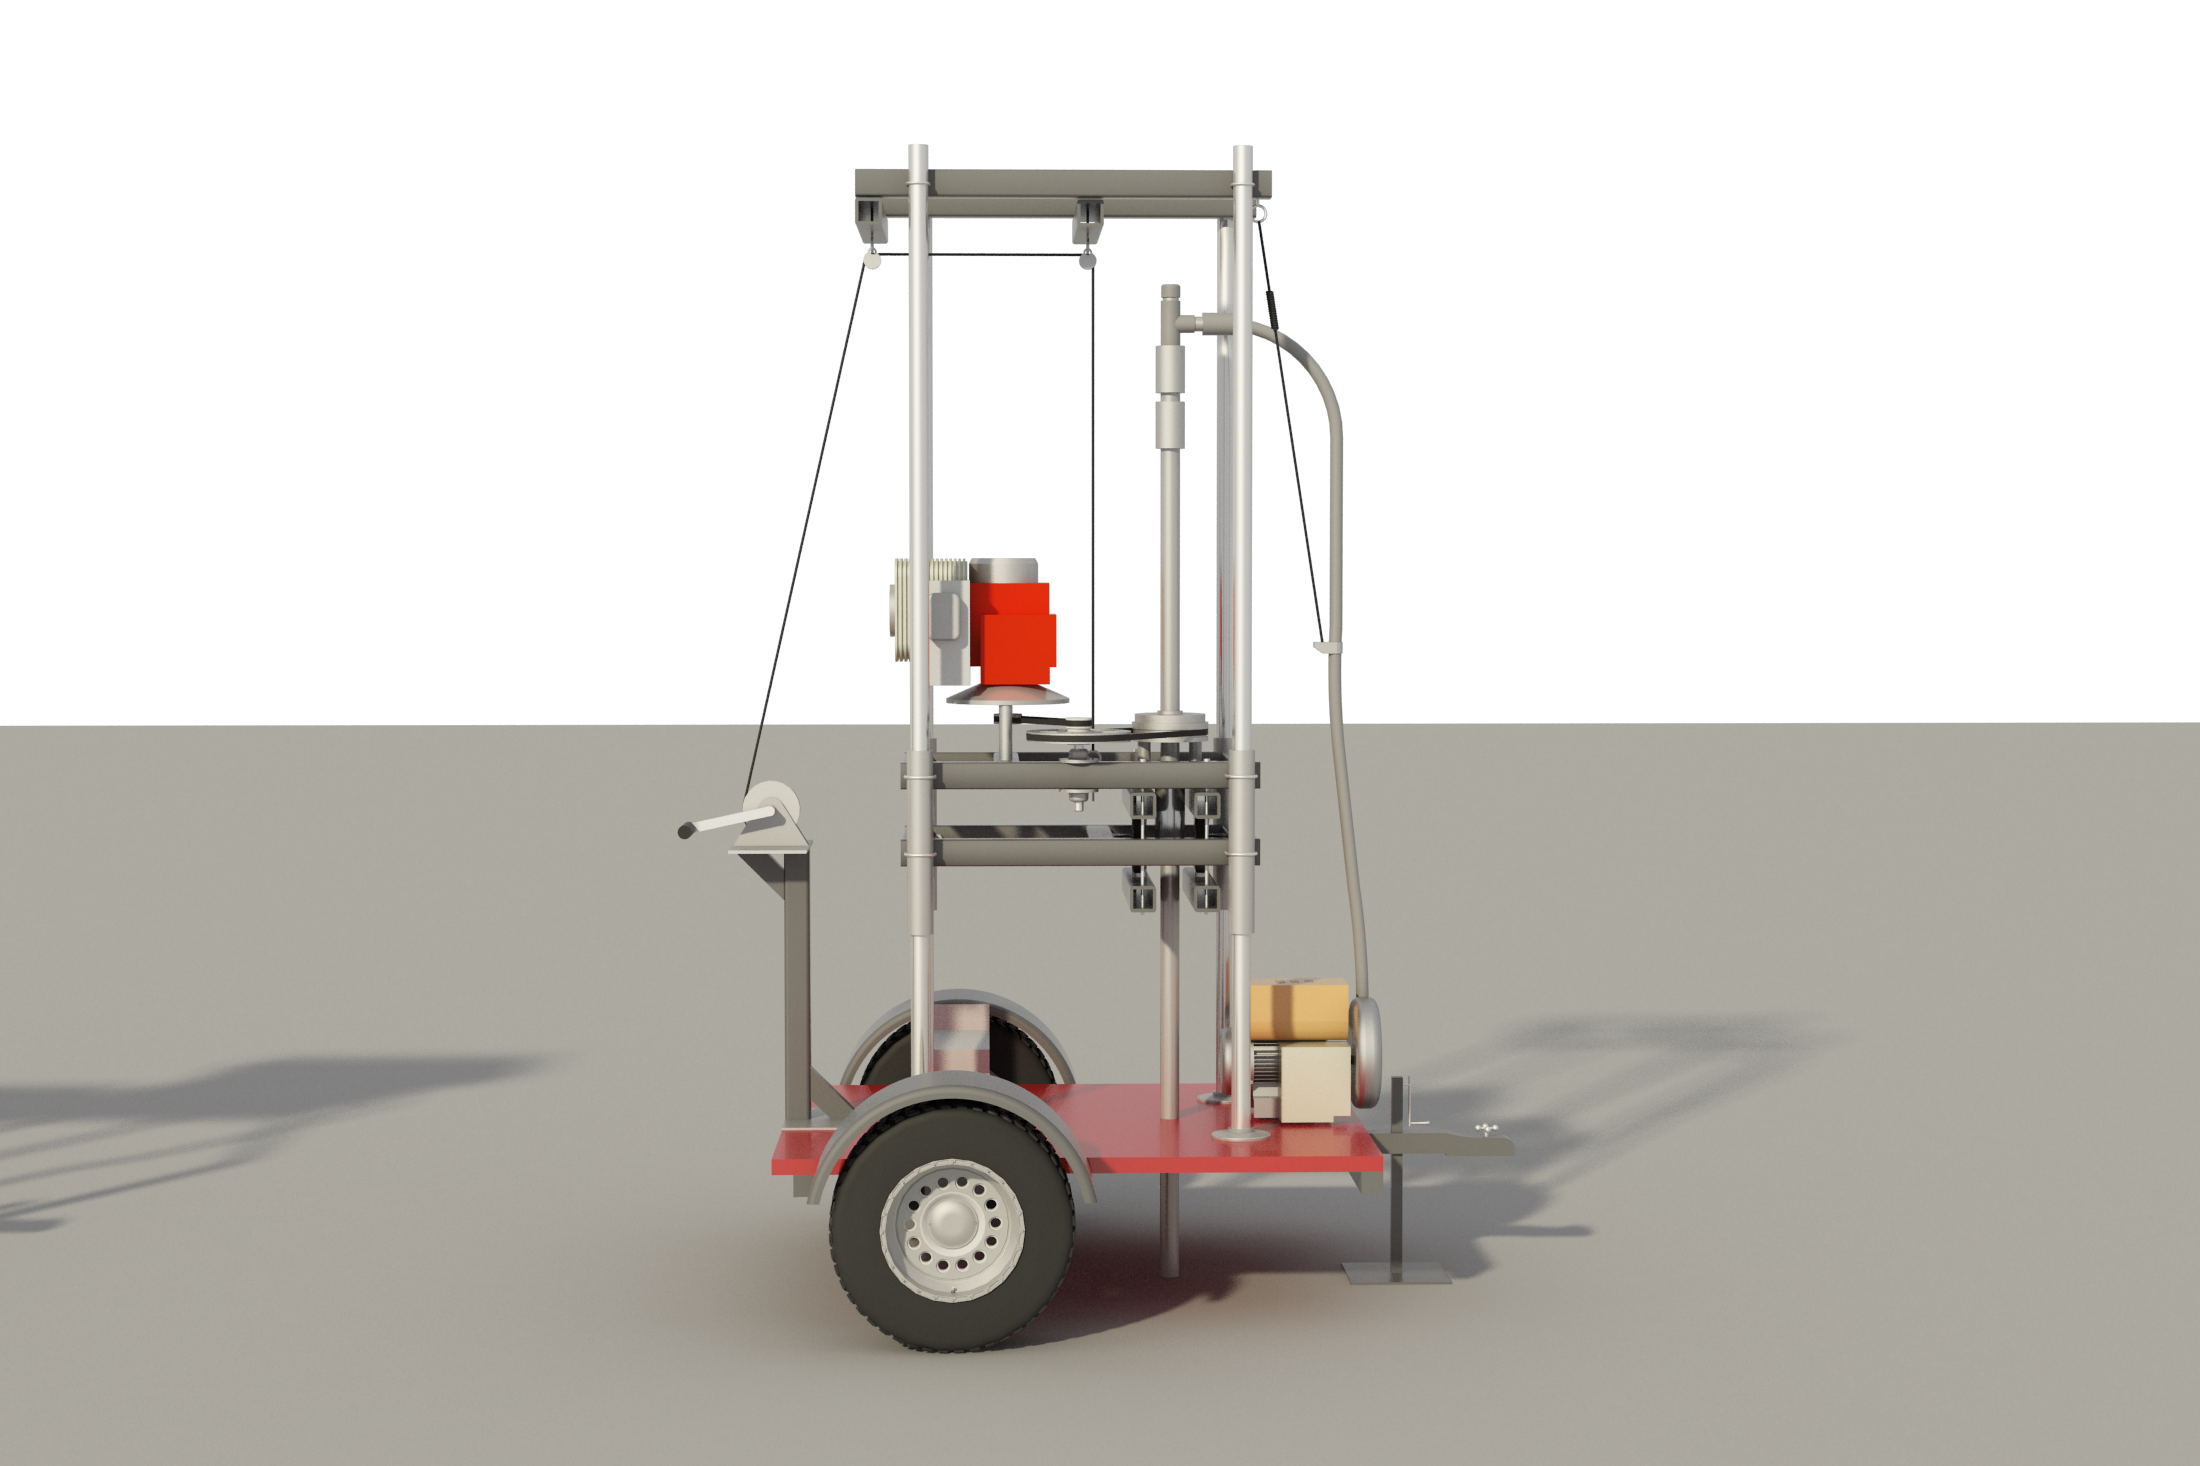 Water Well Drill Plans Build Your Own Drilling Equipment Diy Driller Tool Water Well Drilling Well Drilling Water Well